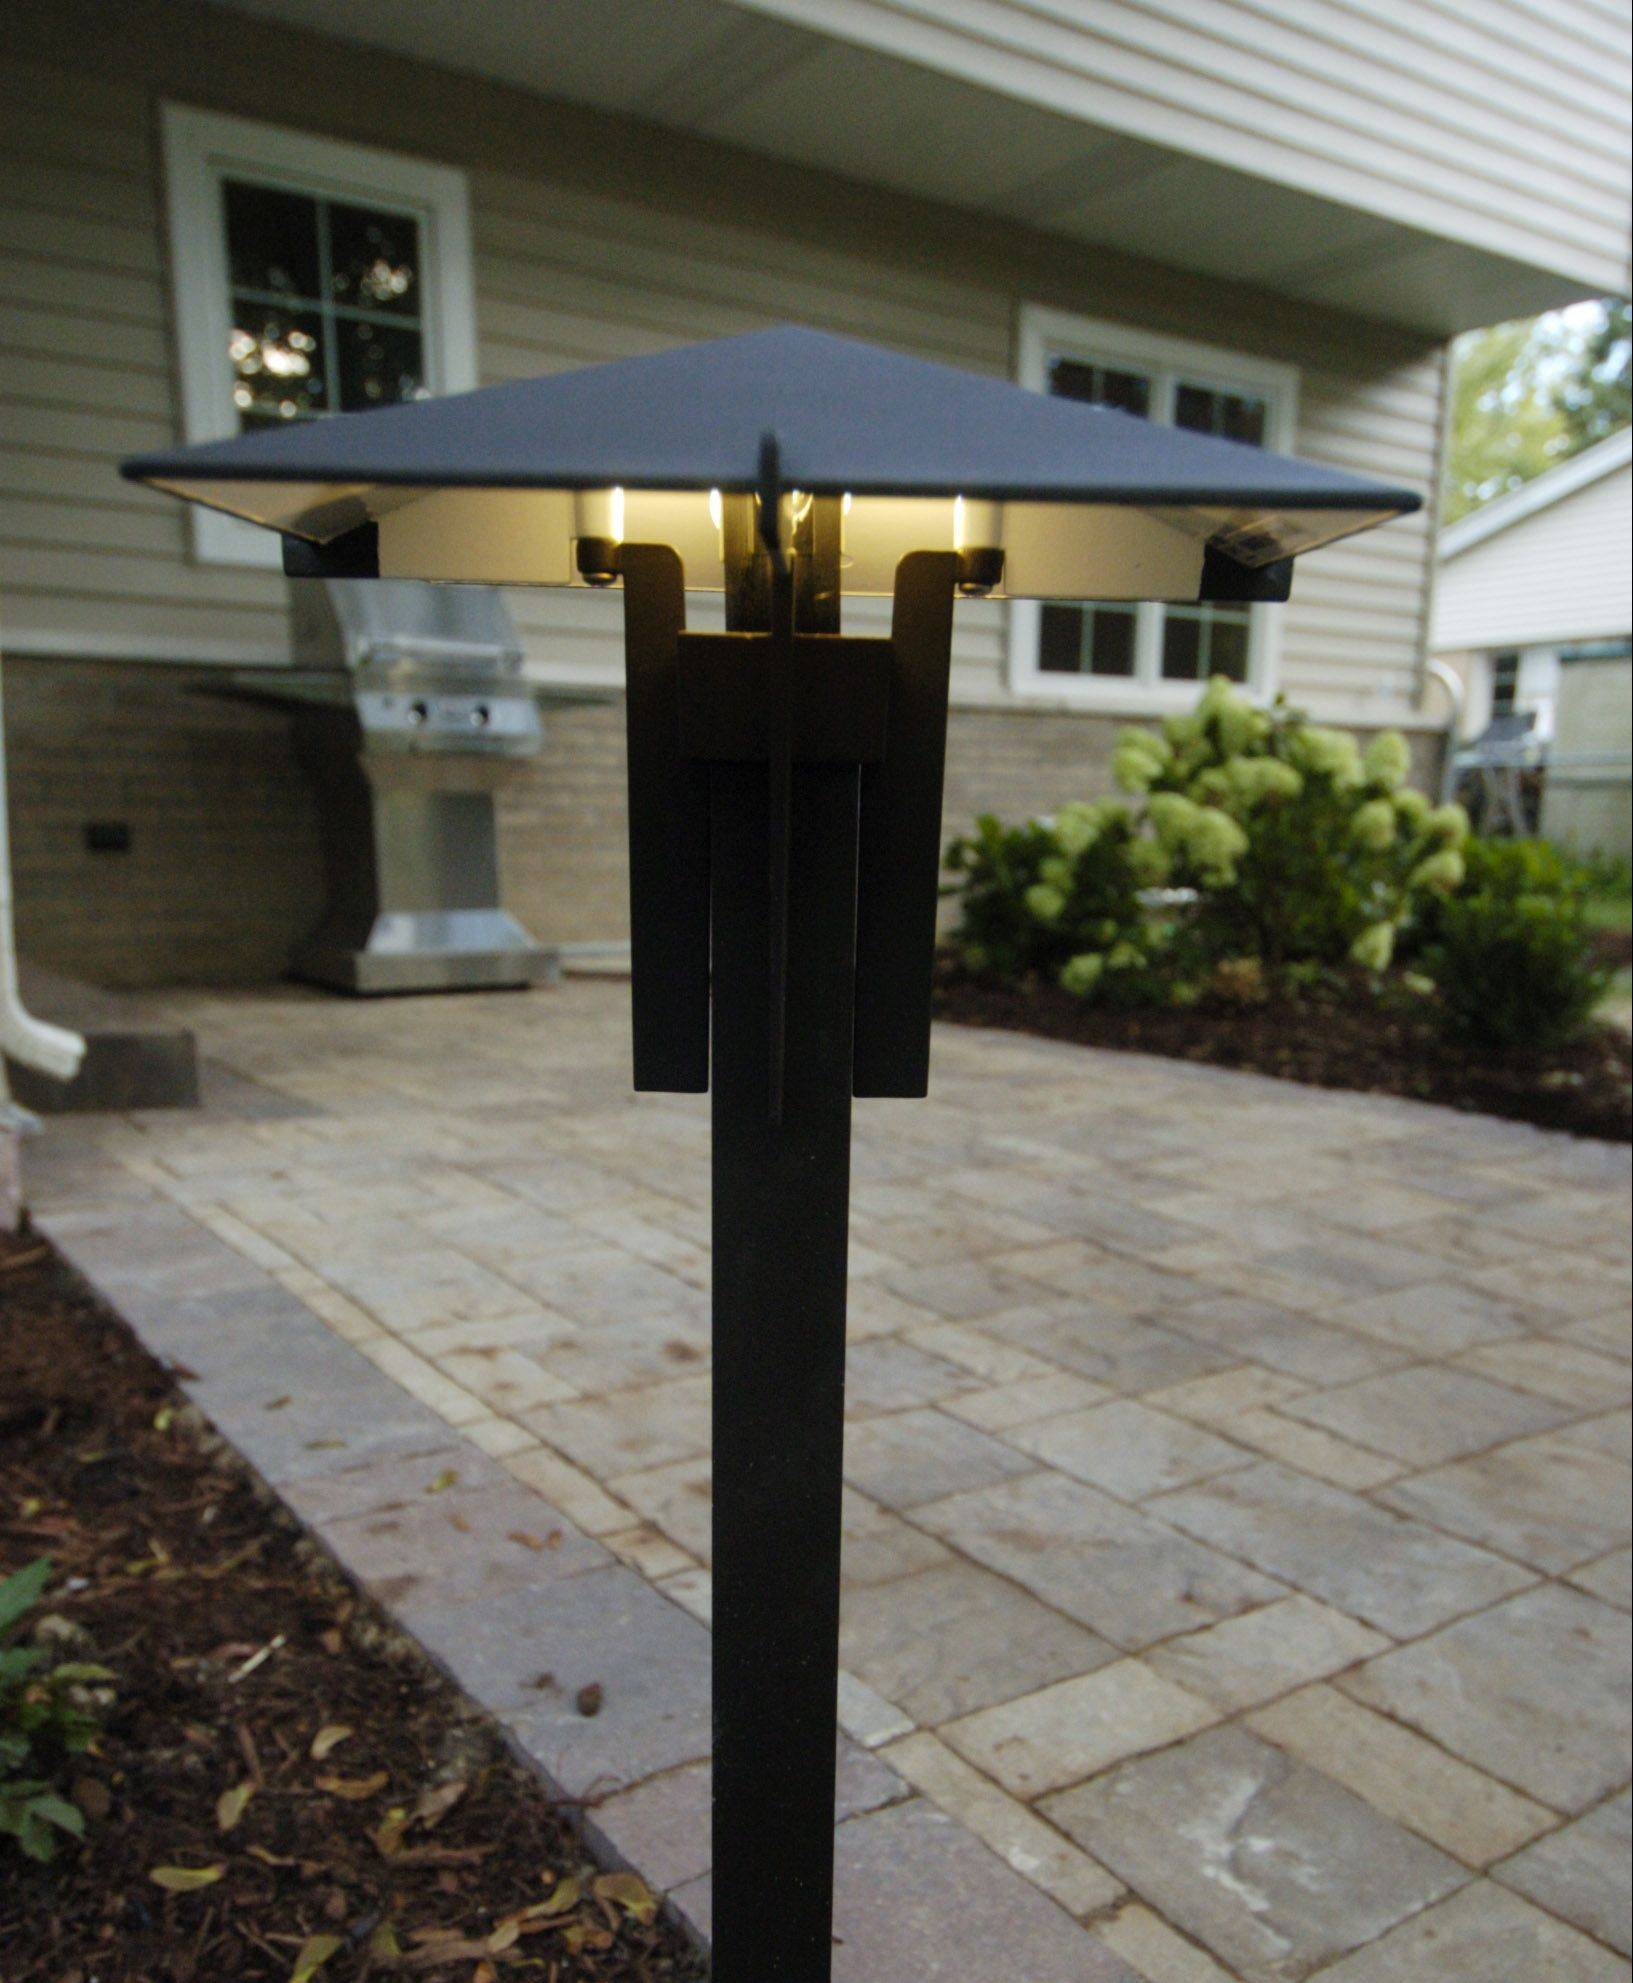 Northwest Electric provided lighting for the backyard, and Upgrade Electric and Lurvey contributed infrastructure for features like the patio of Belgard pavers.